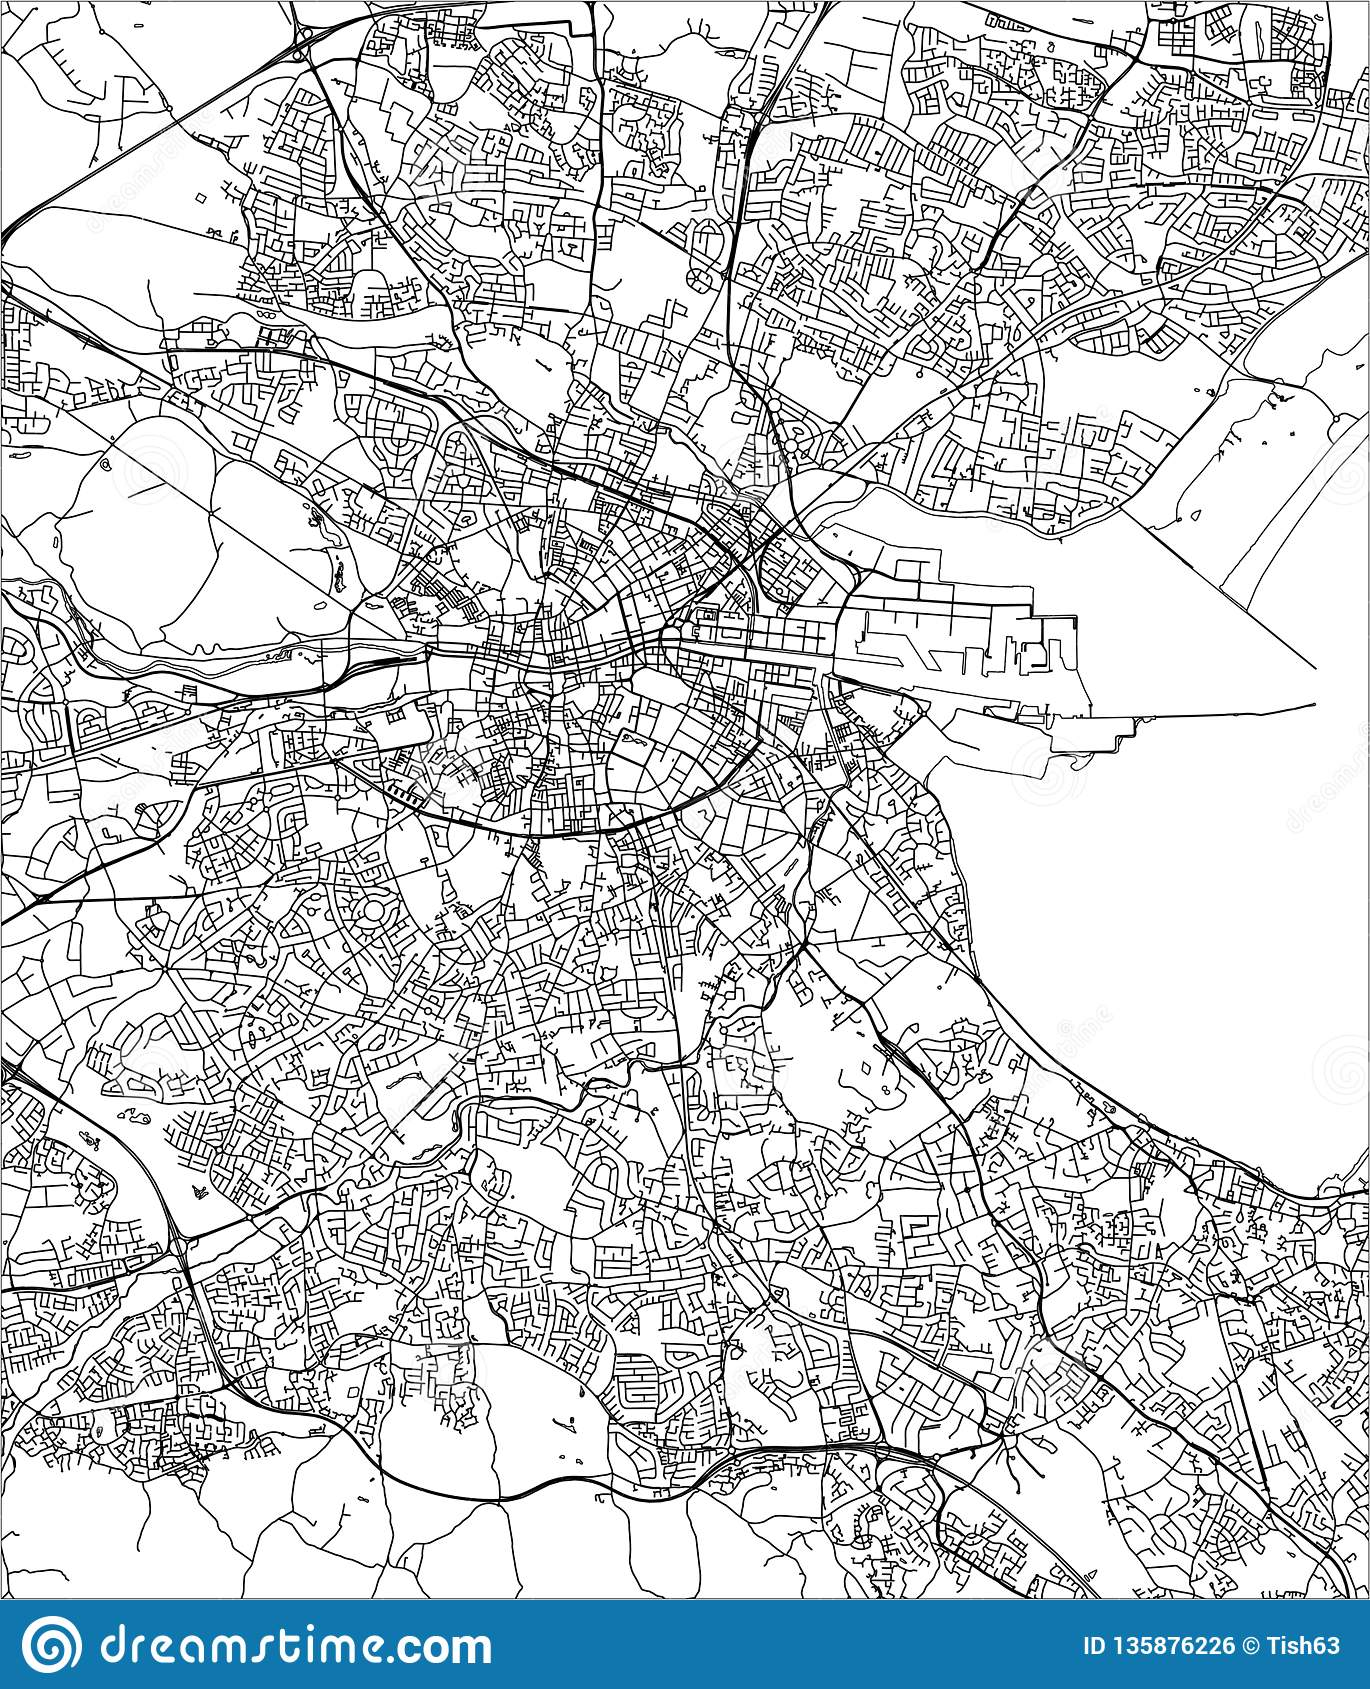 Map Of Dublin 7 Ireland.Map Of The City Of Dublin Ireland Stock Illustration Illustration